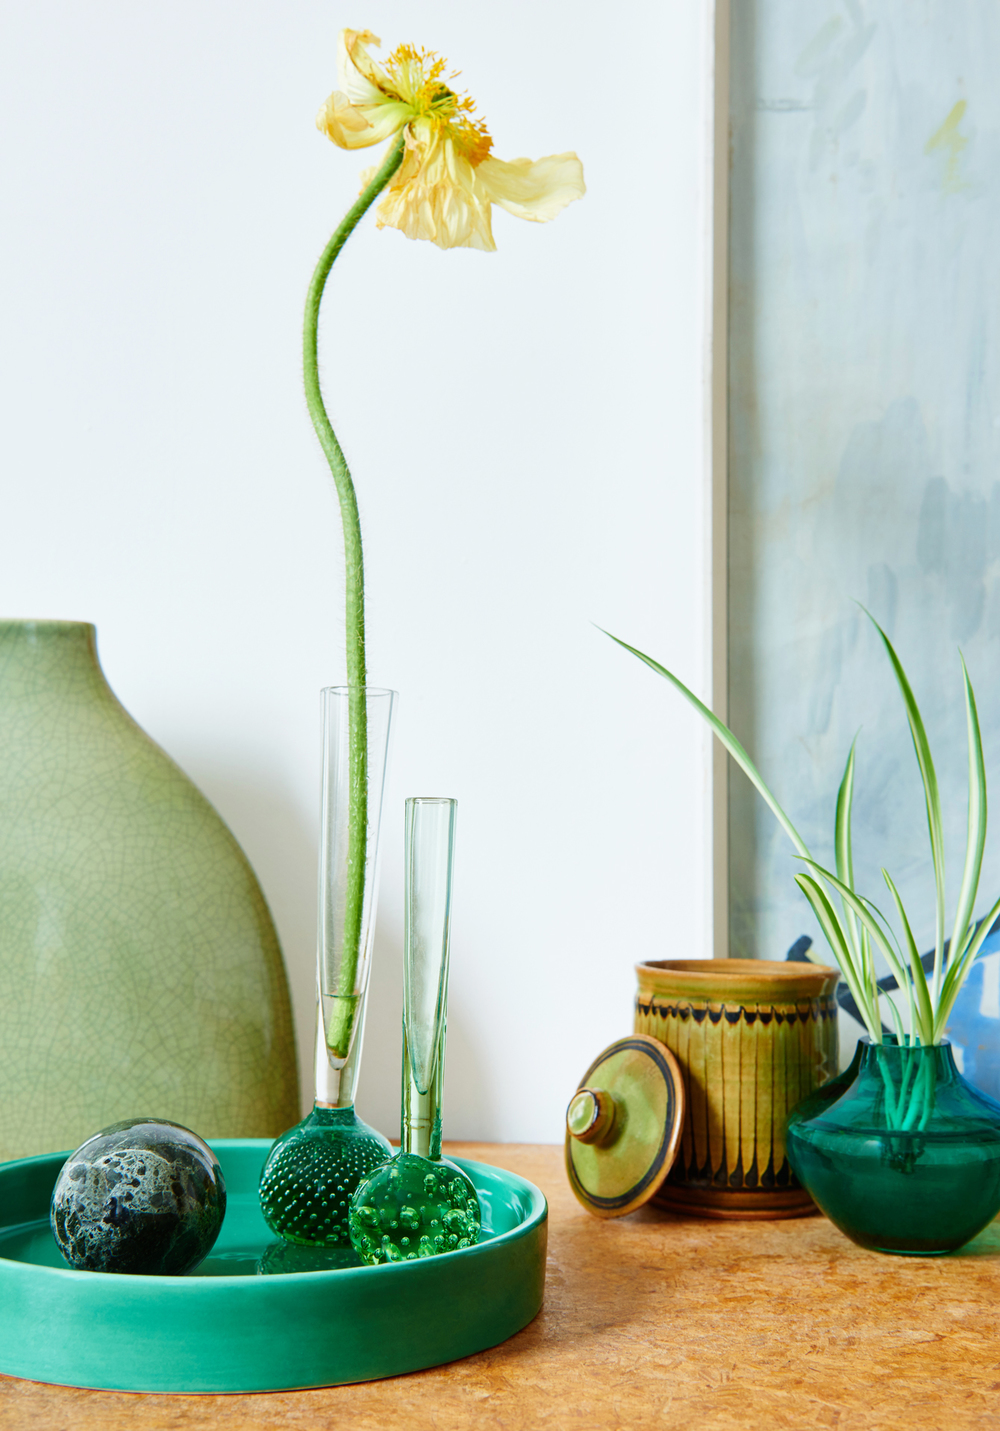 bud vases and mid century vessels